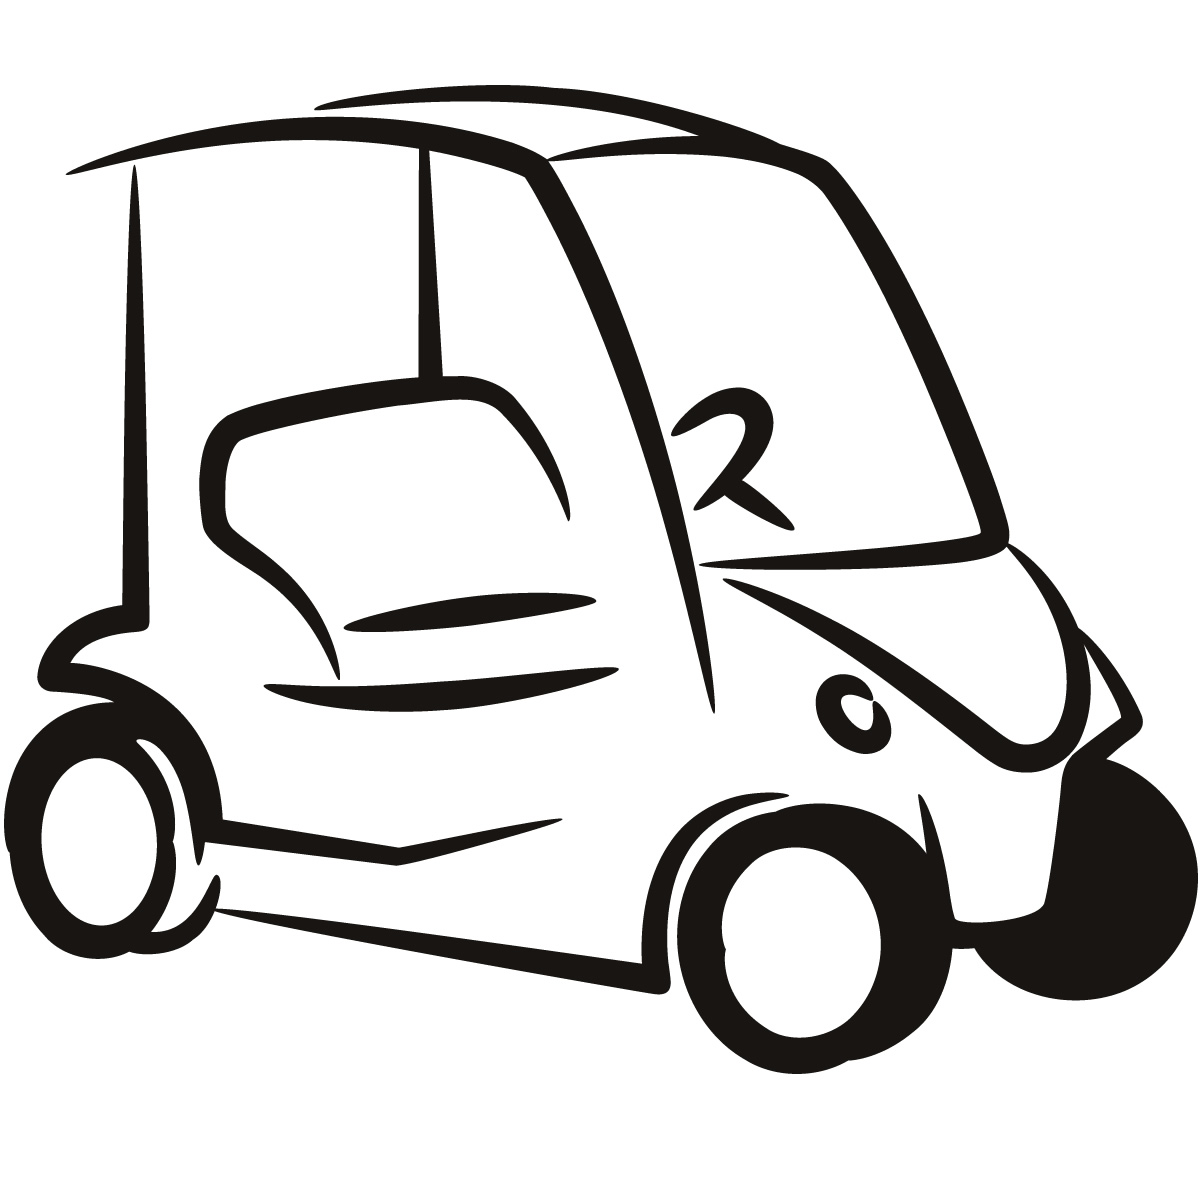 Golf Cart Clipart - Clipart .-Golf Cart Clipart - Clipart .-5